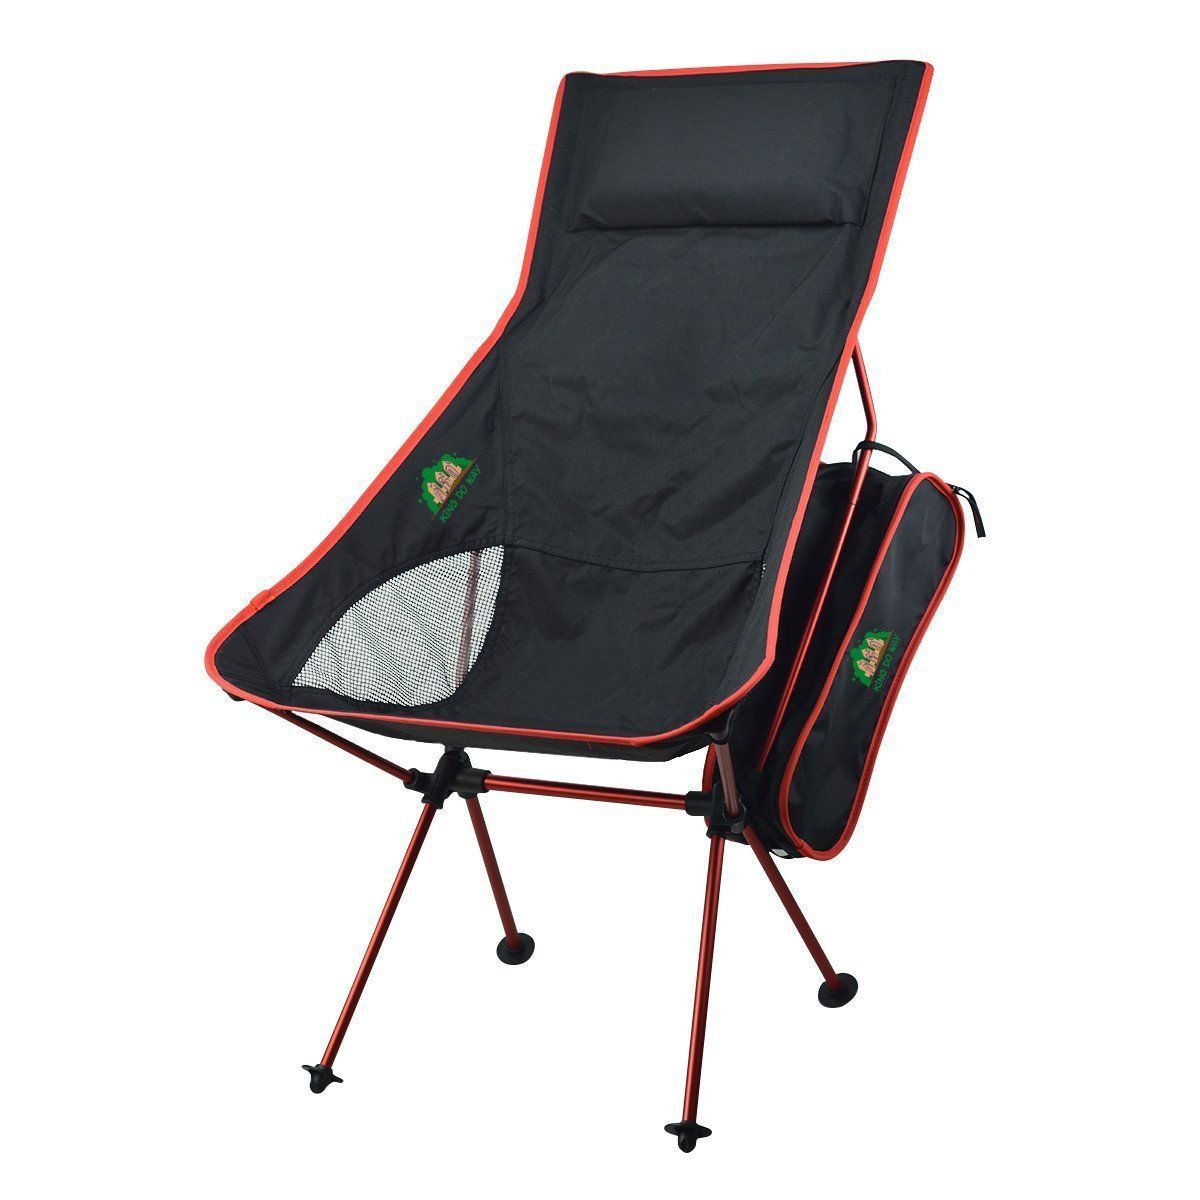 Backpacking chair ultralight - King Do Way Ultralight Portable Folding Outdoor Camping Chair For Hiking Picnic Fishing With Carry Storage